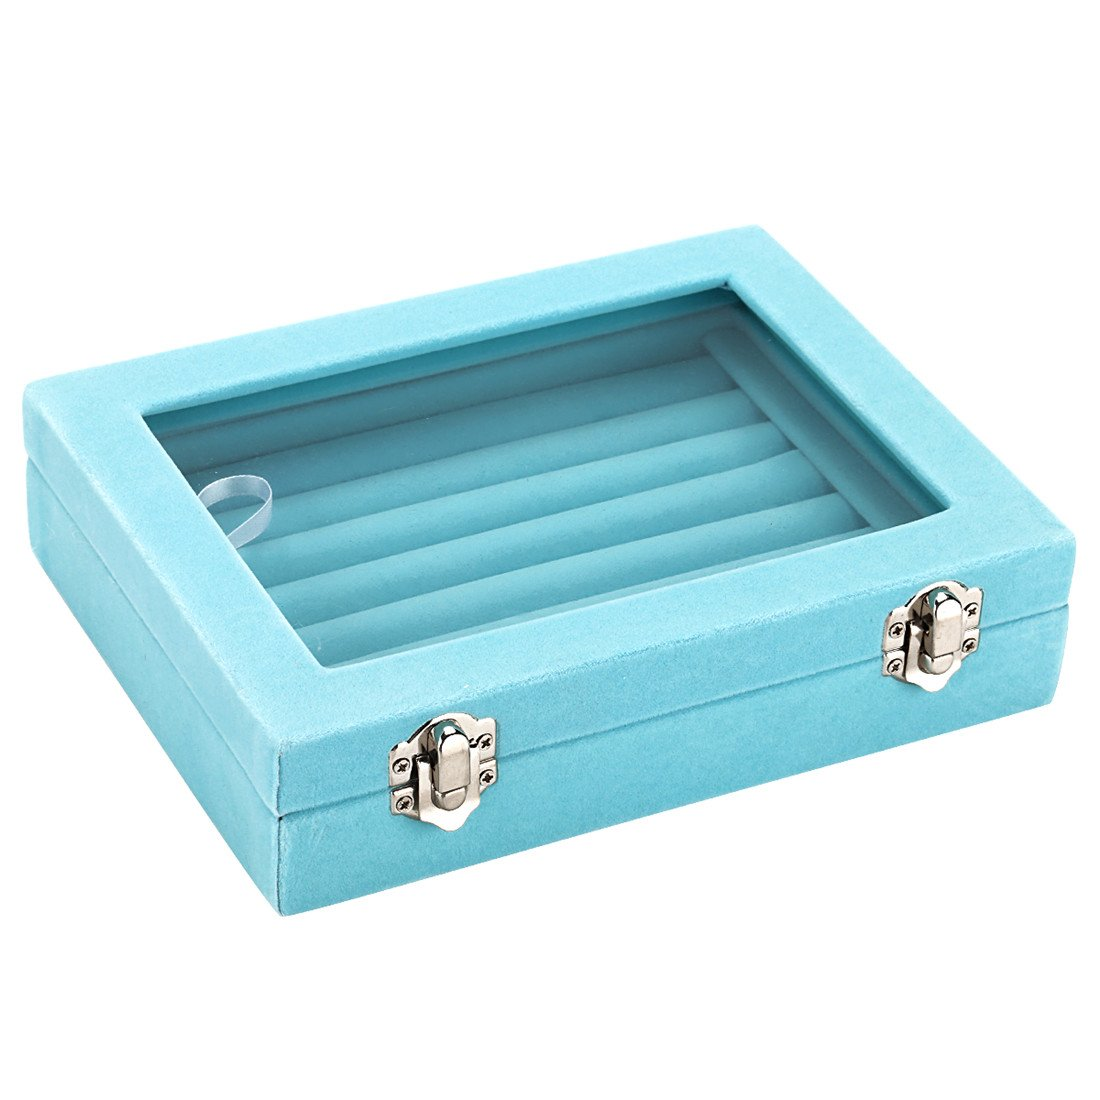 LANTWOO Velvet Glass Jewelry Display Storage Box Ring Earrings Jewelry Box Ring Holder Case 2 clasps